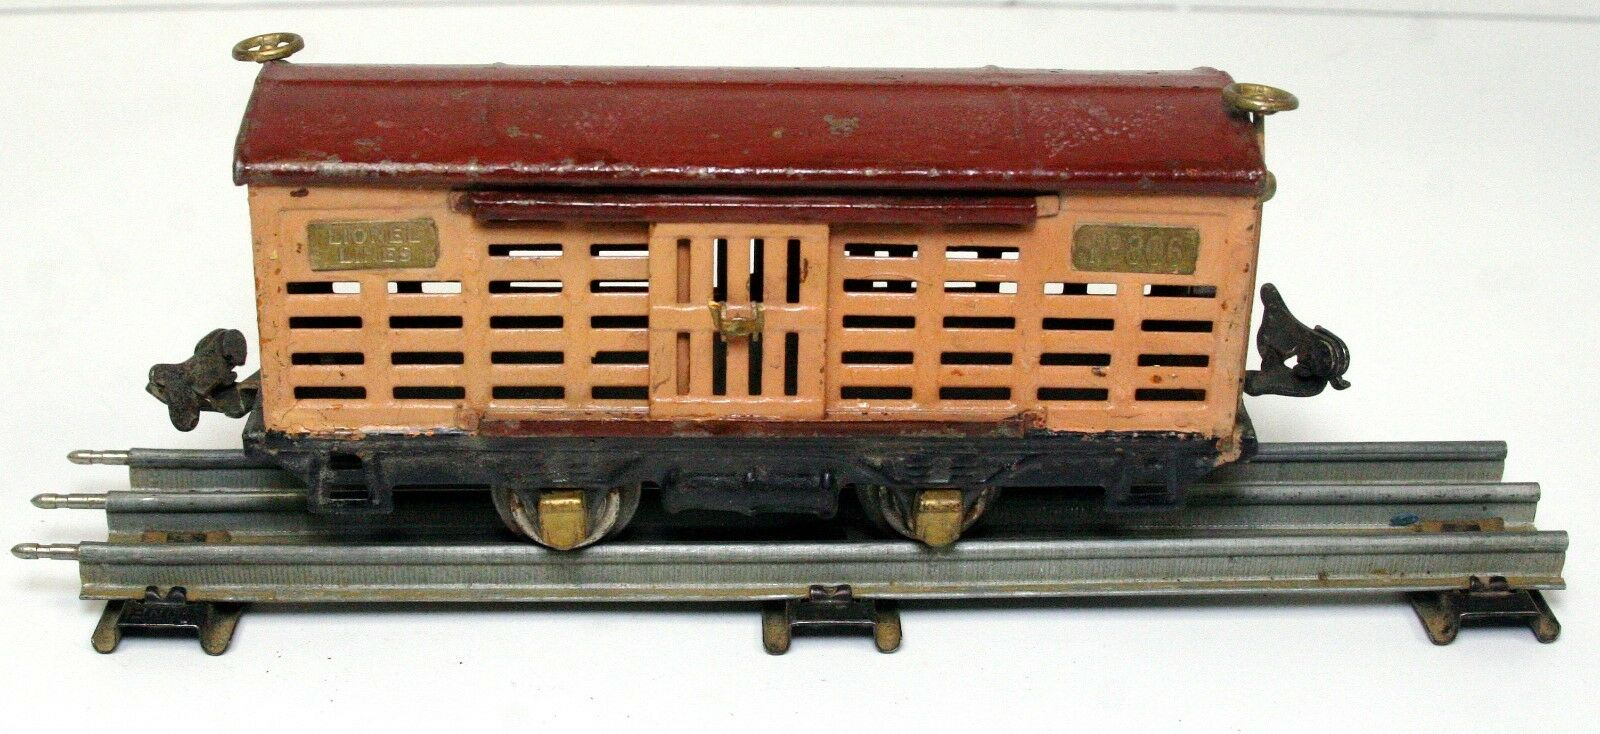 Lionel Pre-WW2 806 cattle car, Tan and Brown